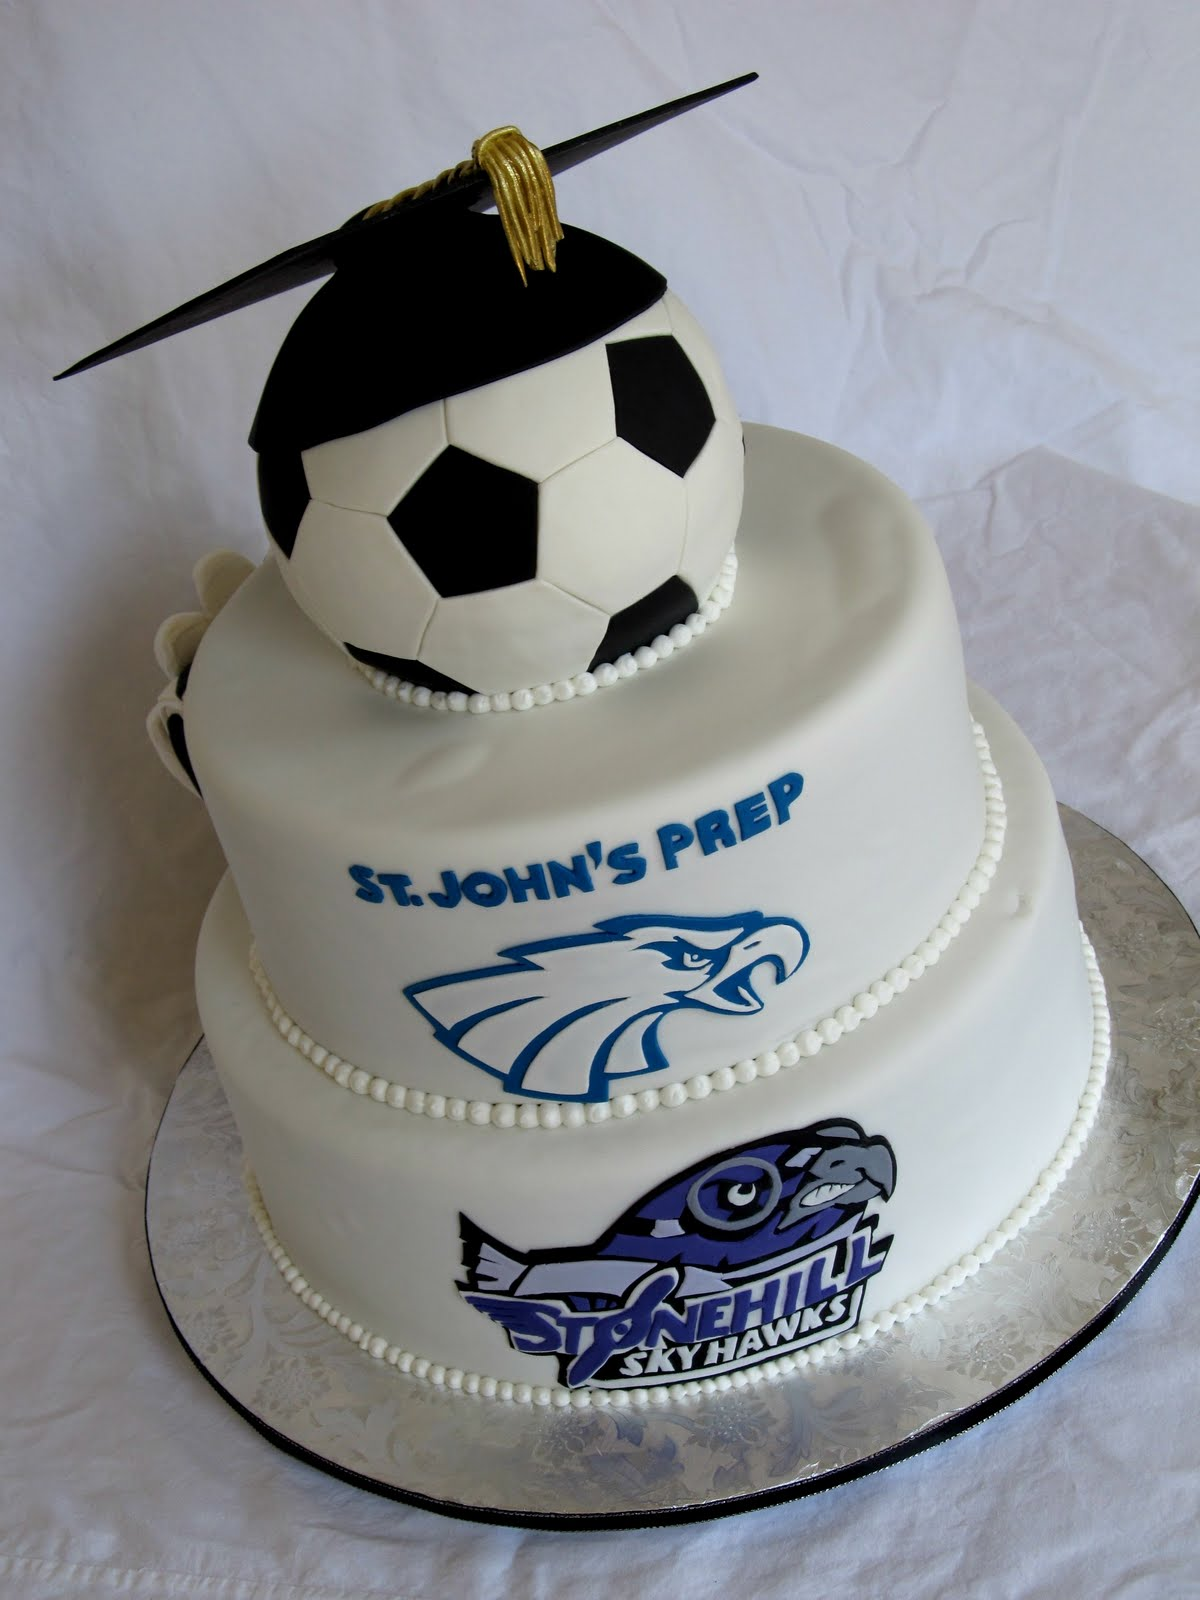 Graduation Birthday Cake Design : Soccer Graduation Cake   Renee Conner Cake Design